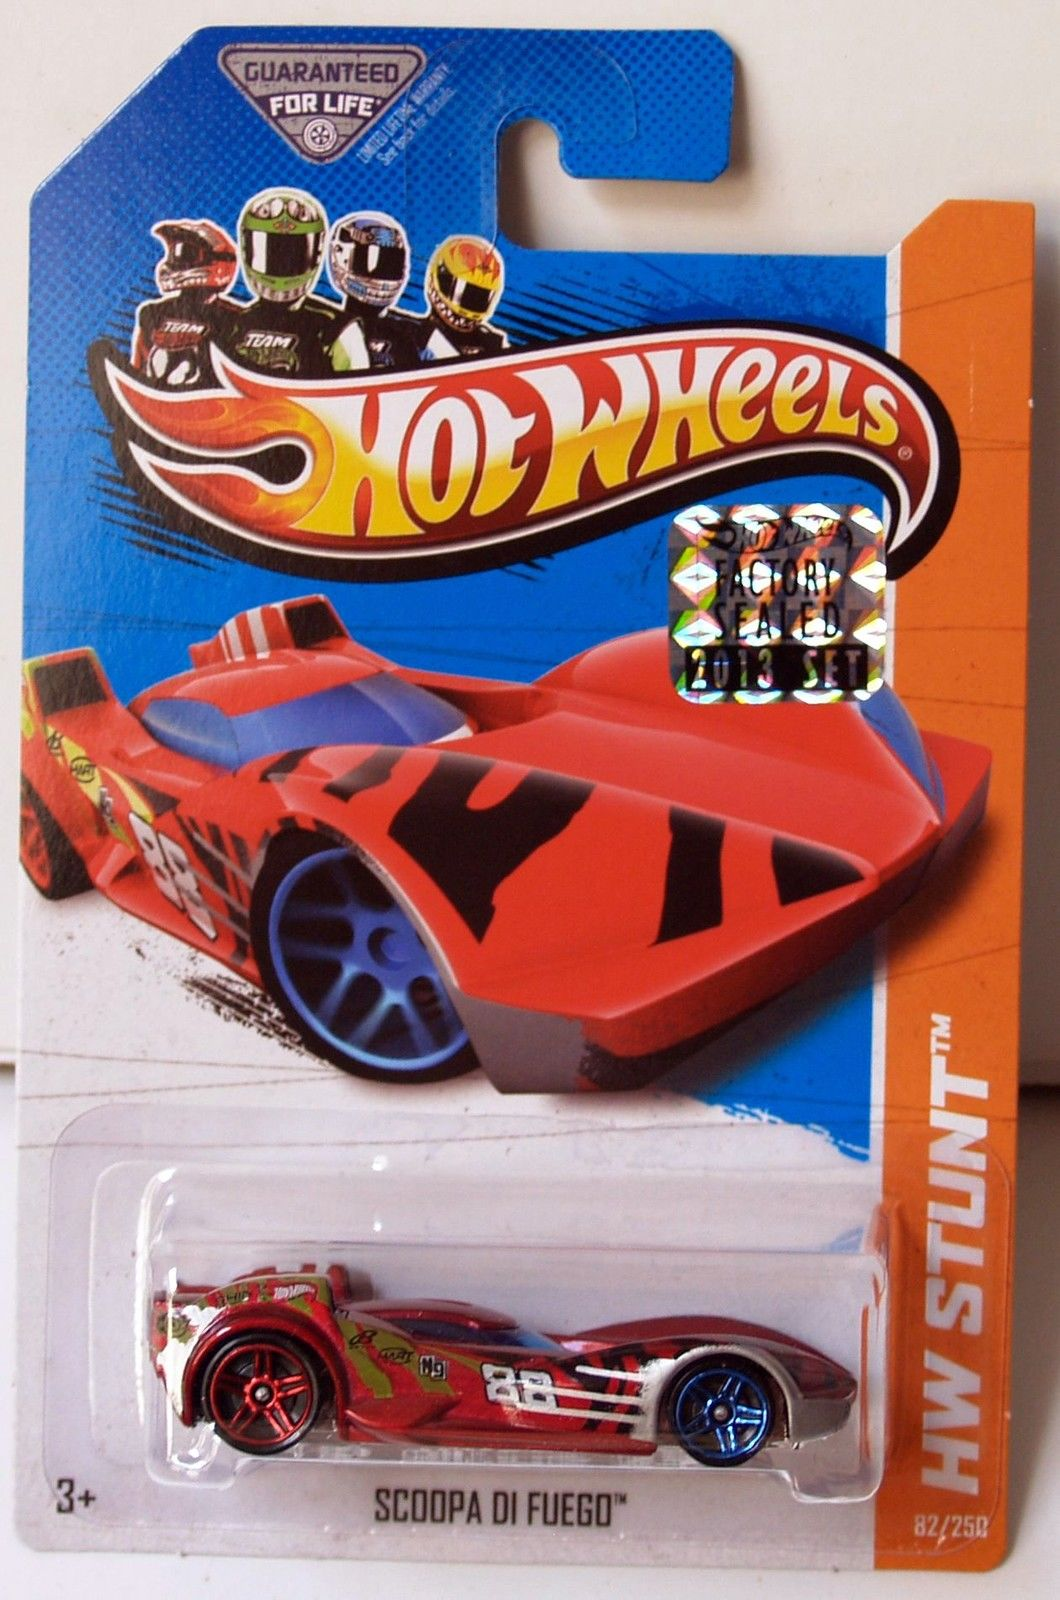 HOT WHEELS 2013 HW STUNT DRIFT RACE SCOOPA DI FUEGO FACTORY SEALED